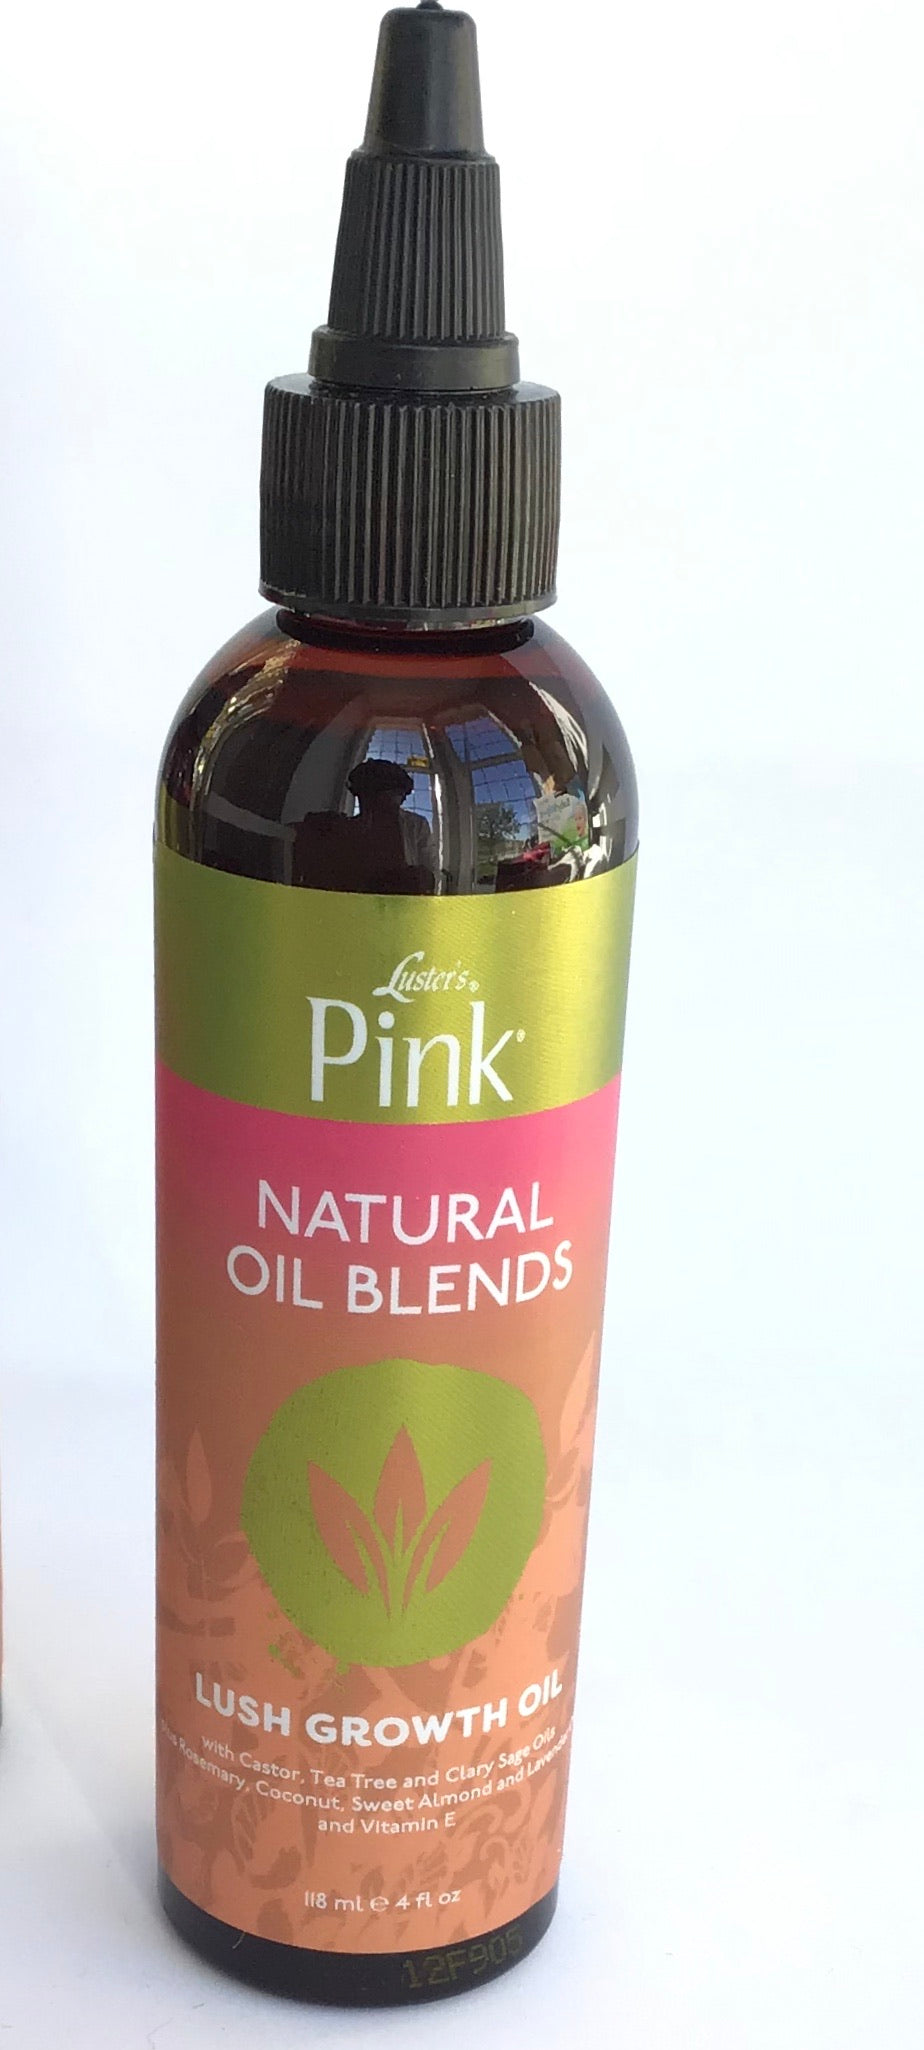 LUSTER'S PINK NATURAL OIL BLENDS LUSH GROWTH OIL